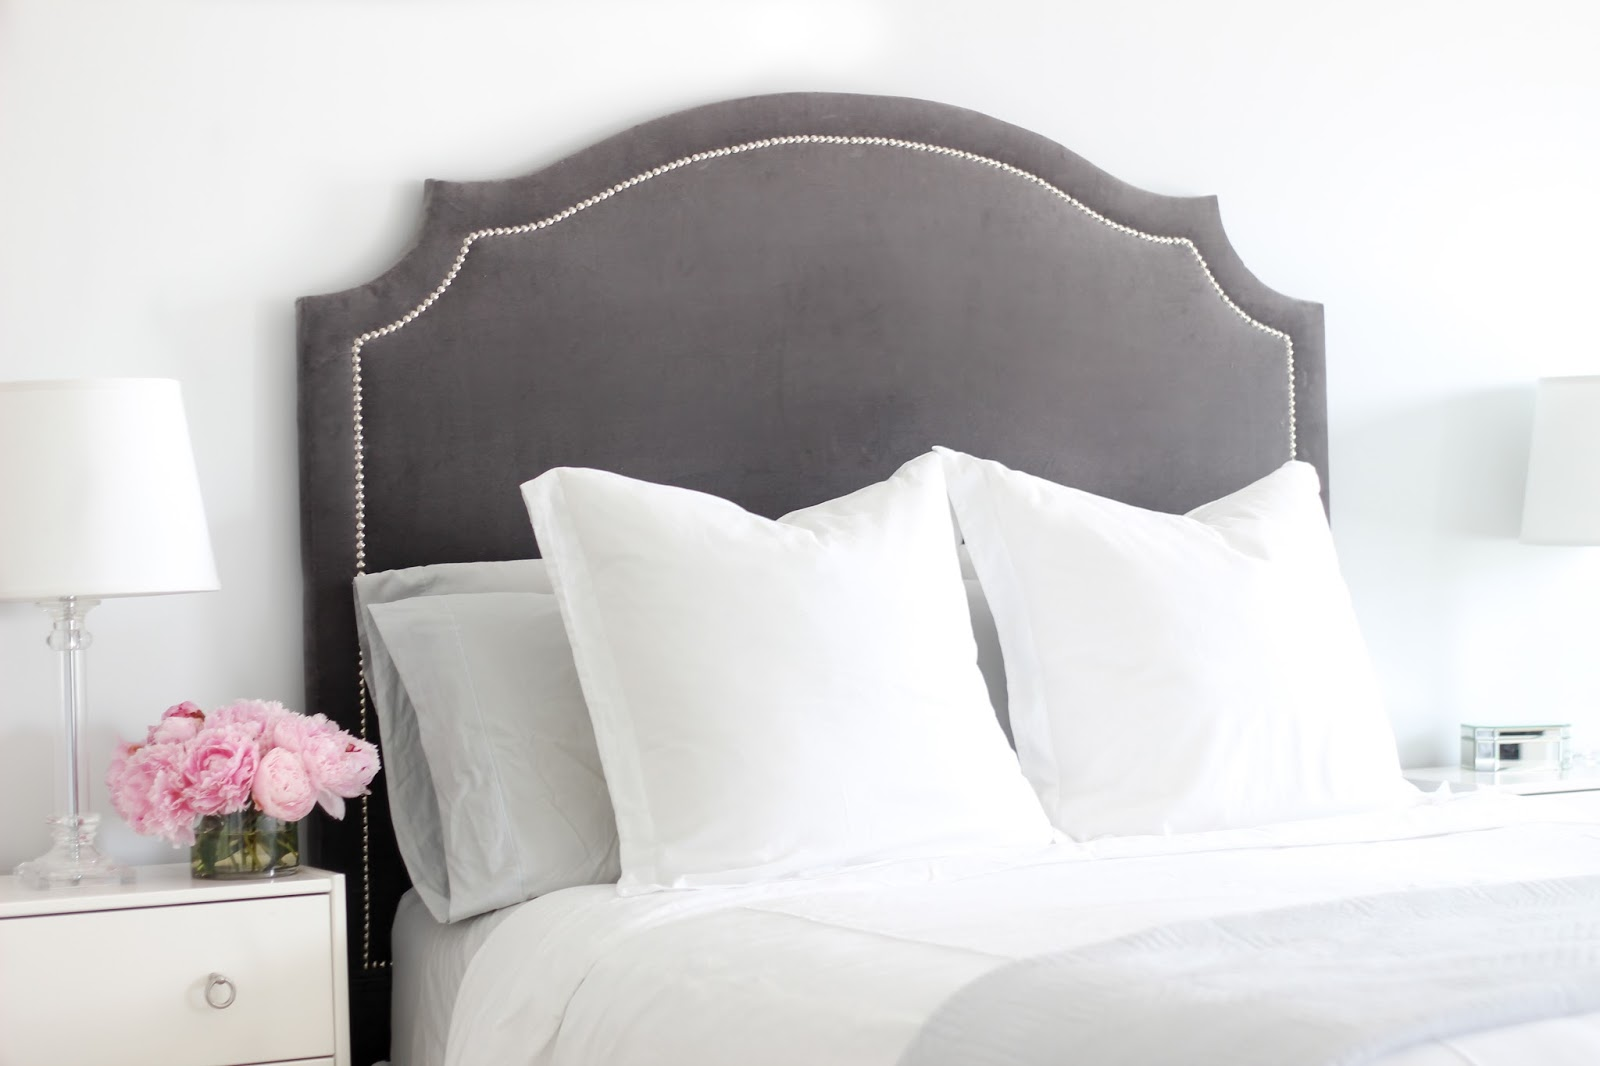 Making An Upholstered Headboard With Nailhead Trim Diy Upholstered Headboard With Nailhead Trim Update Home